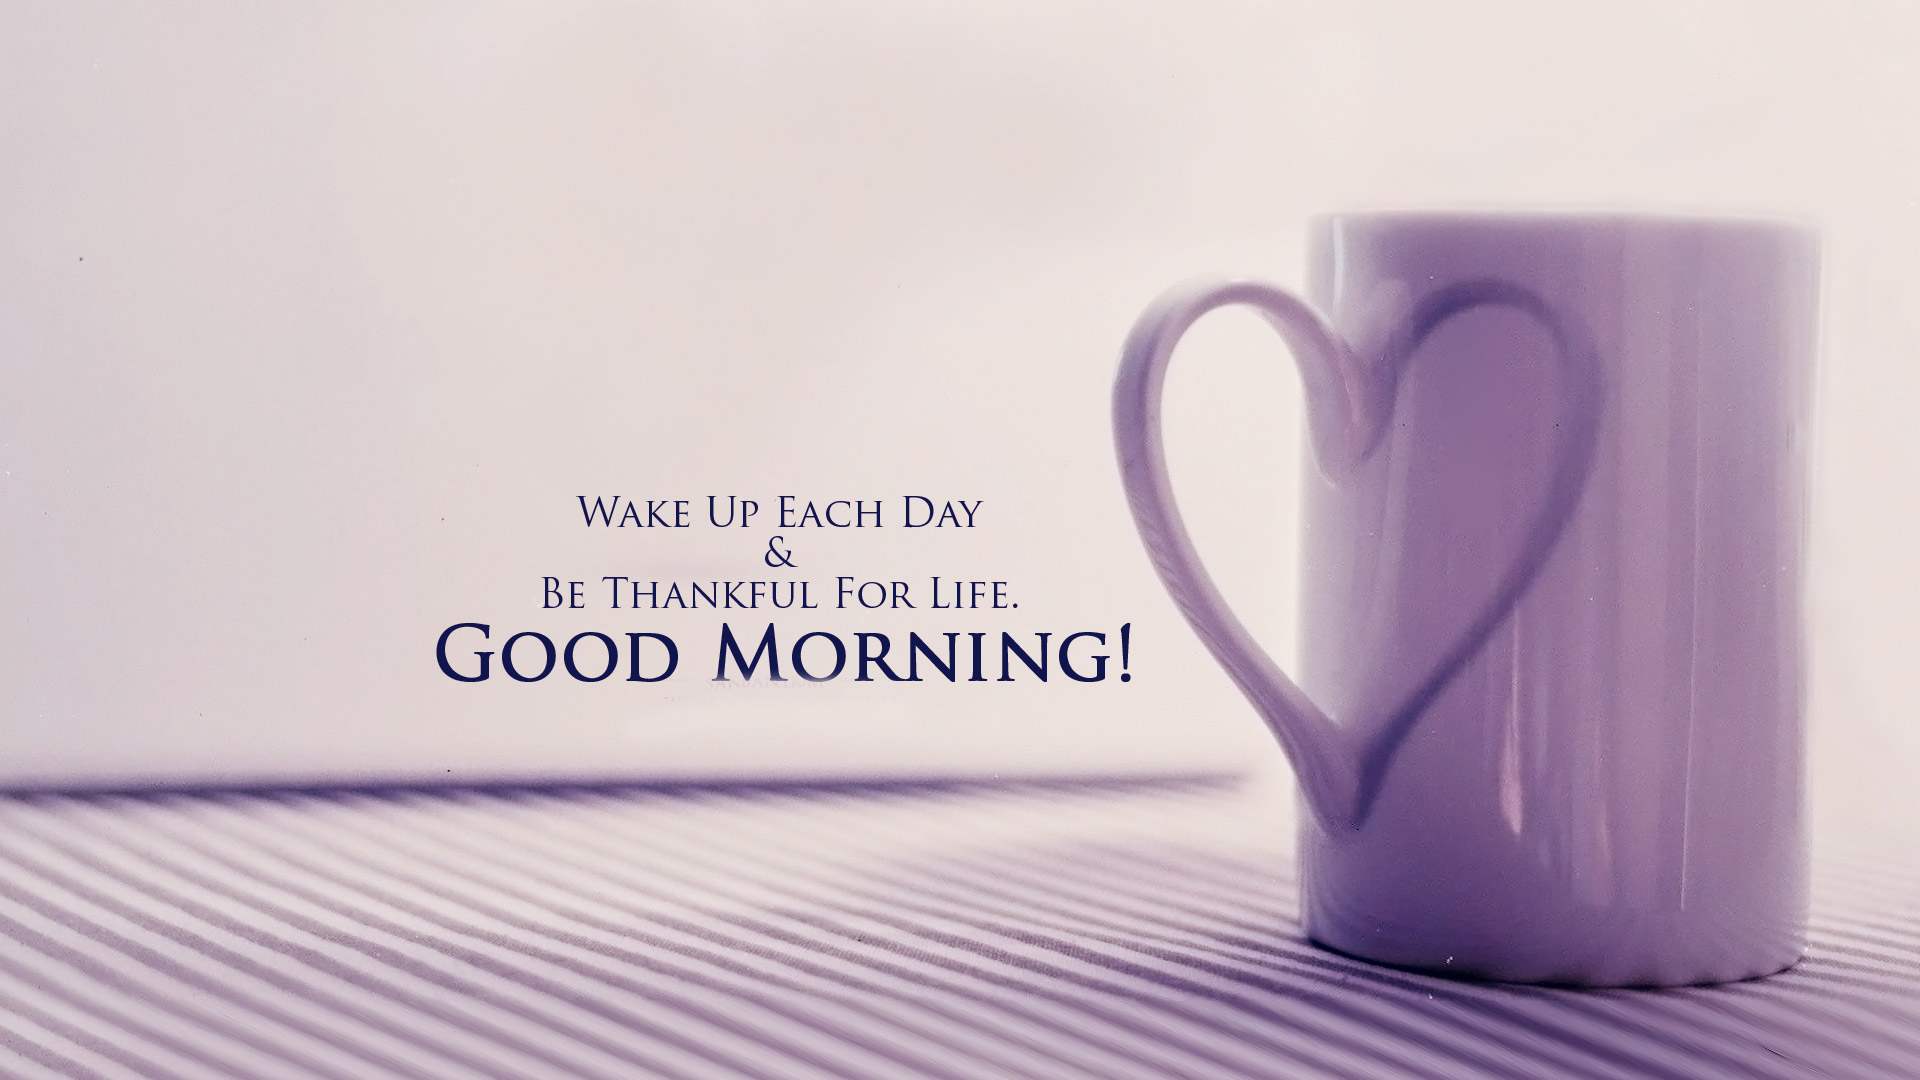 Quotes On Morning Wishes: Cheerful Good Morning Quotes. QuotesGram